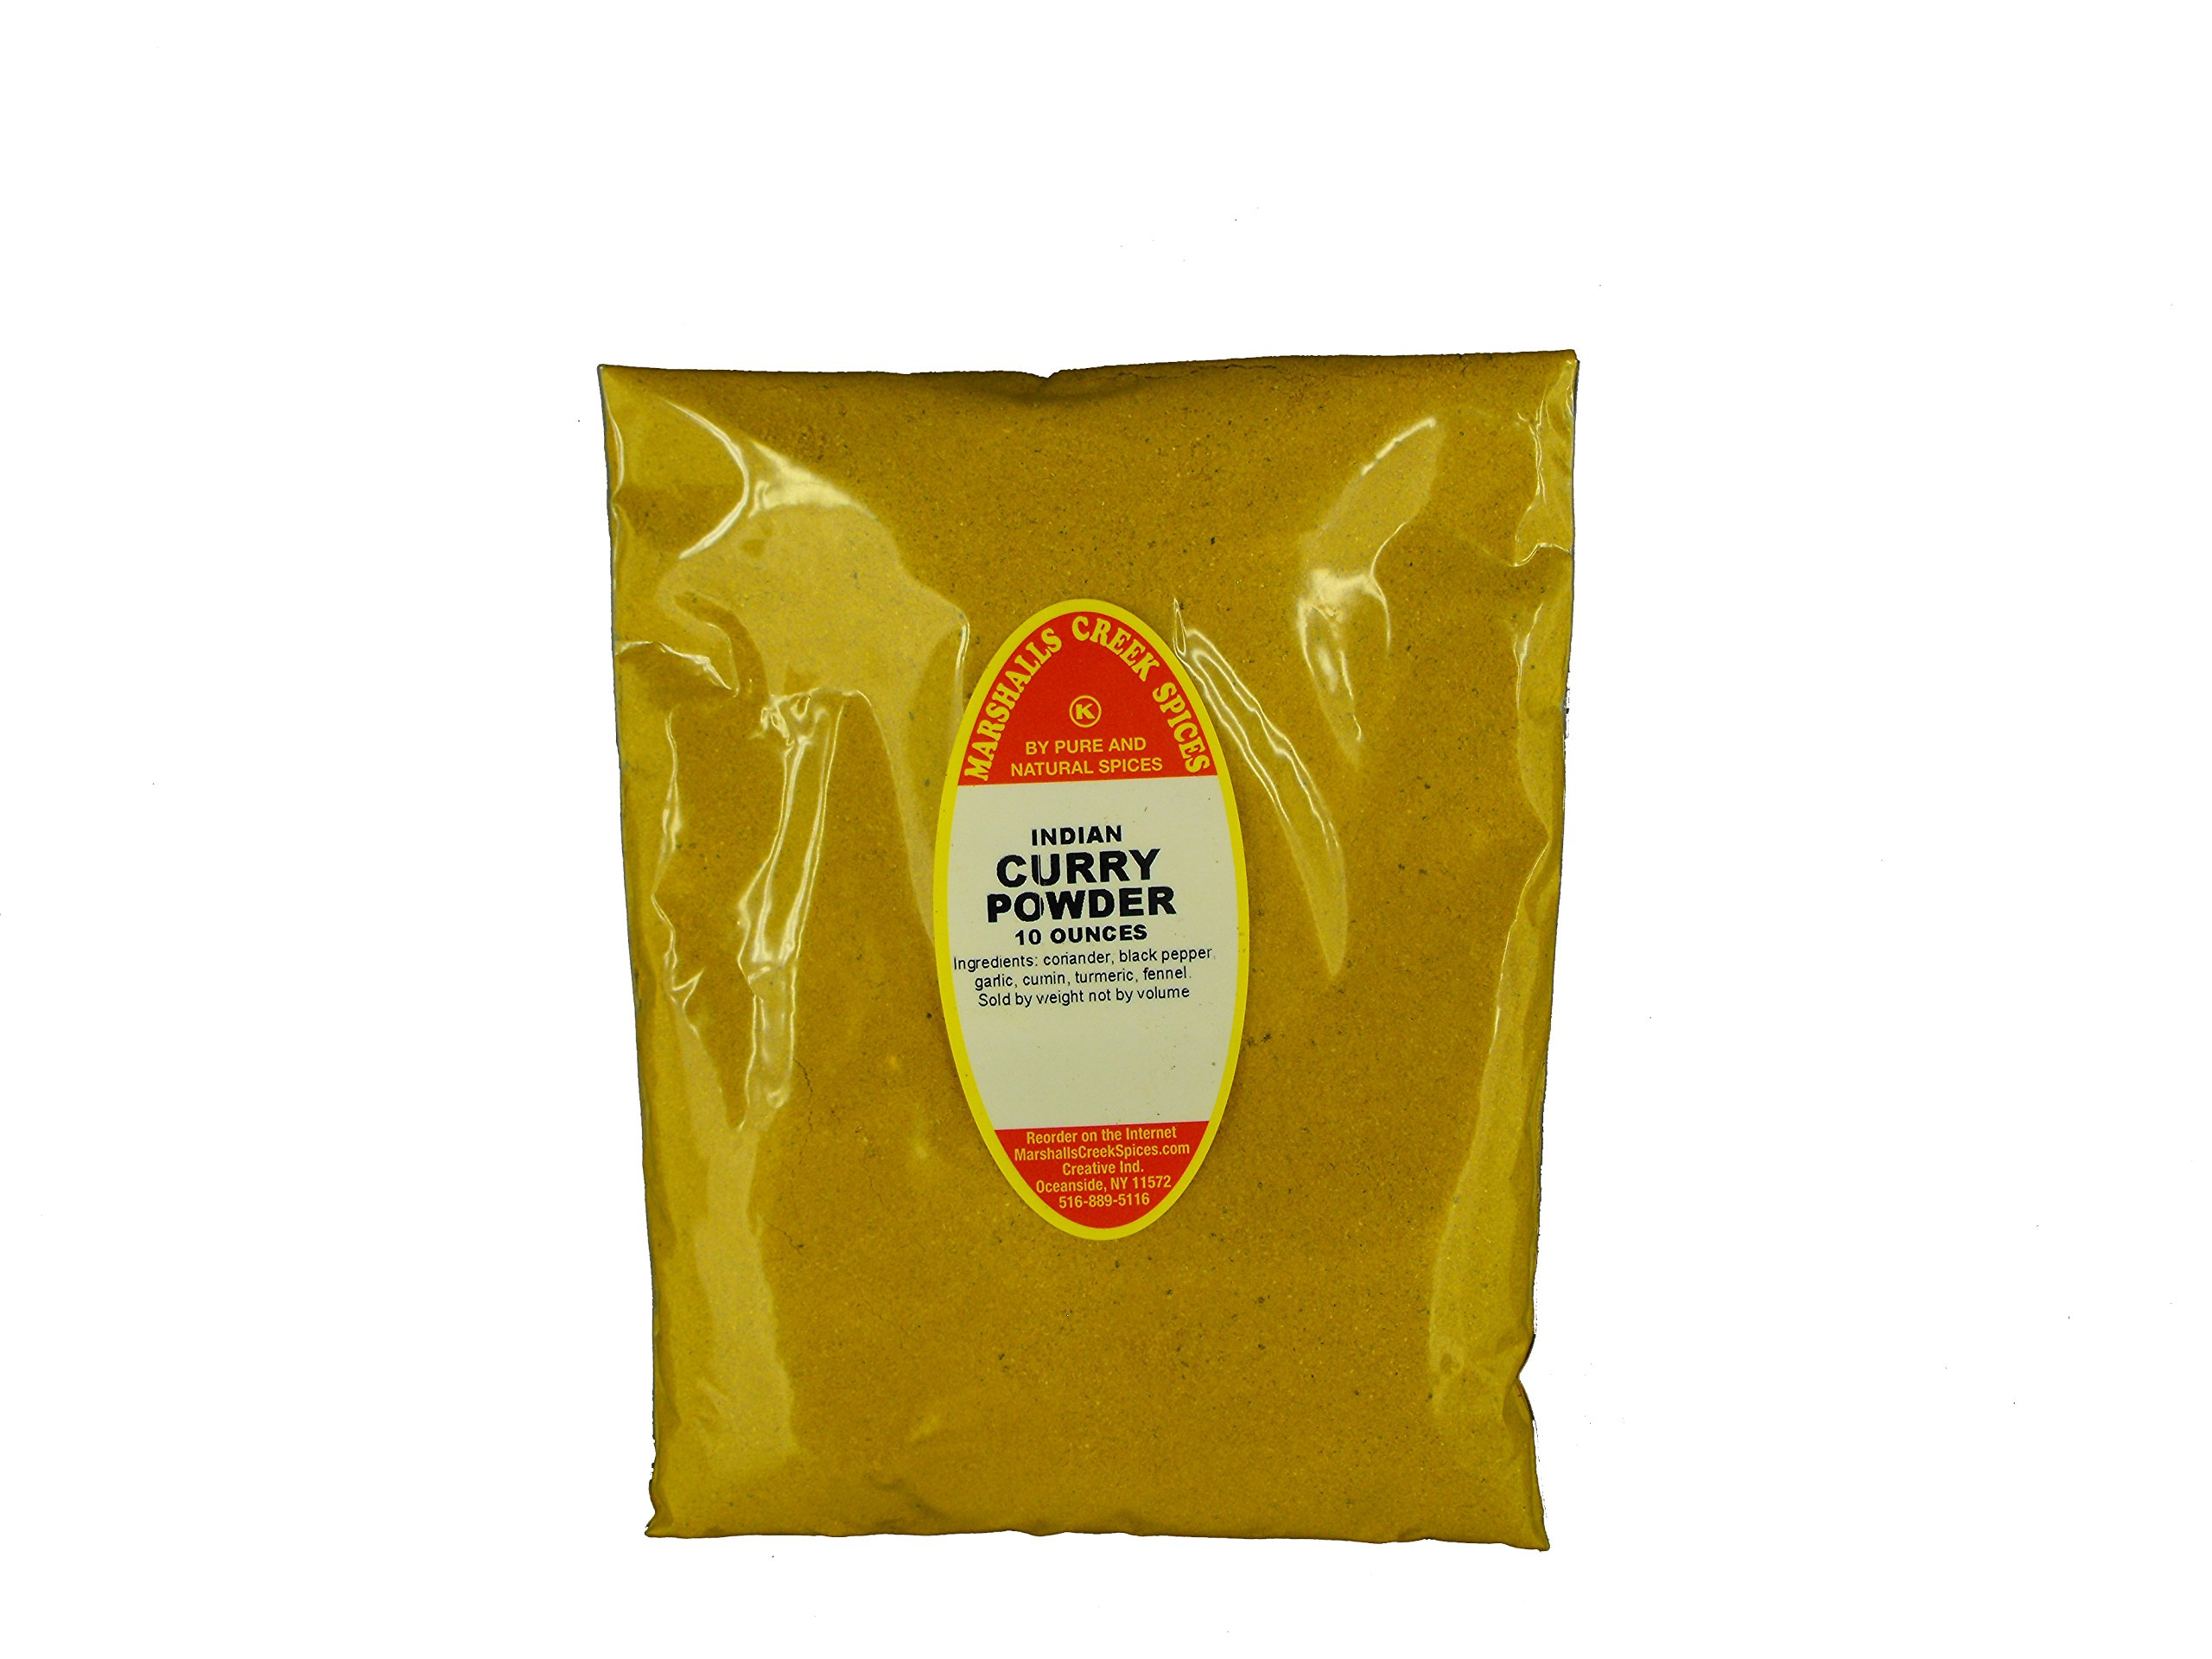 Marshalls Creek Kosher Spices (12 pack) CURRY POWDER, INDIAN REFILL,  10 oz.